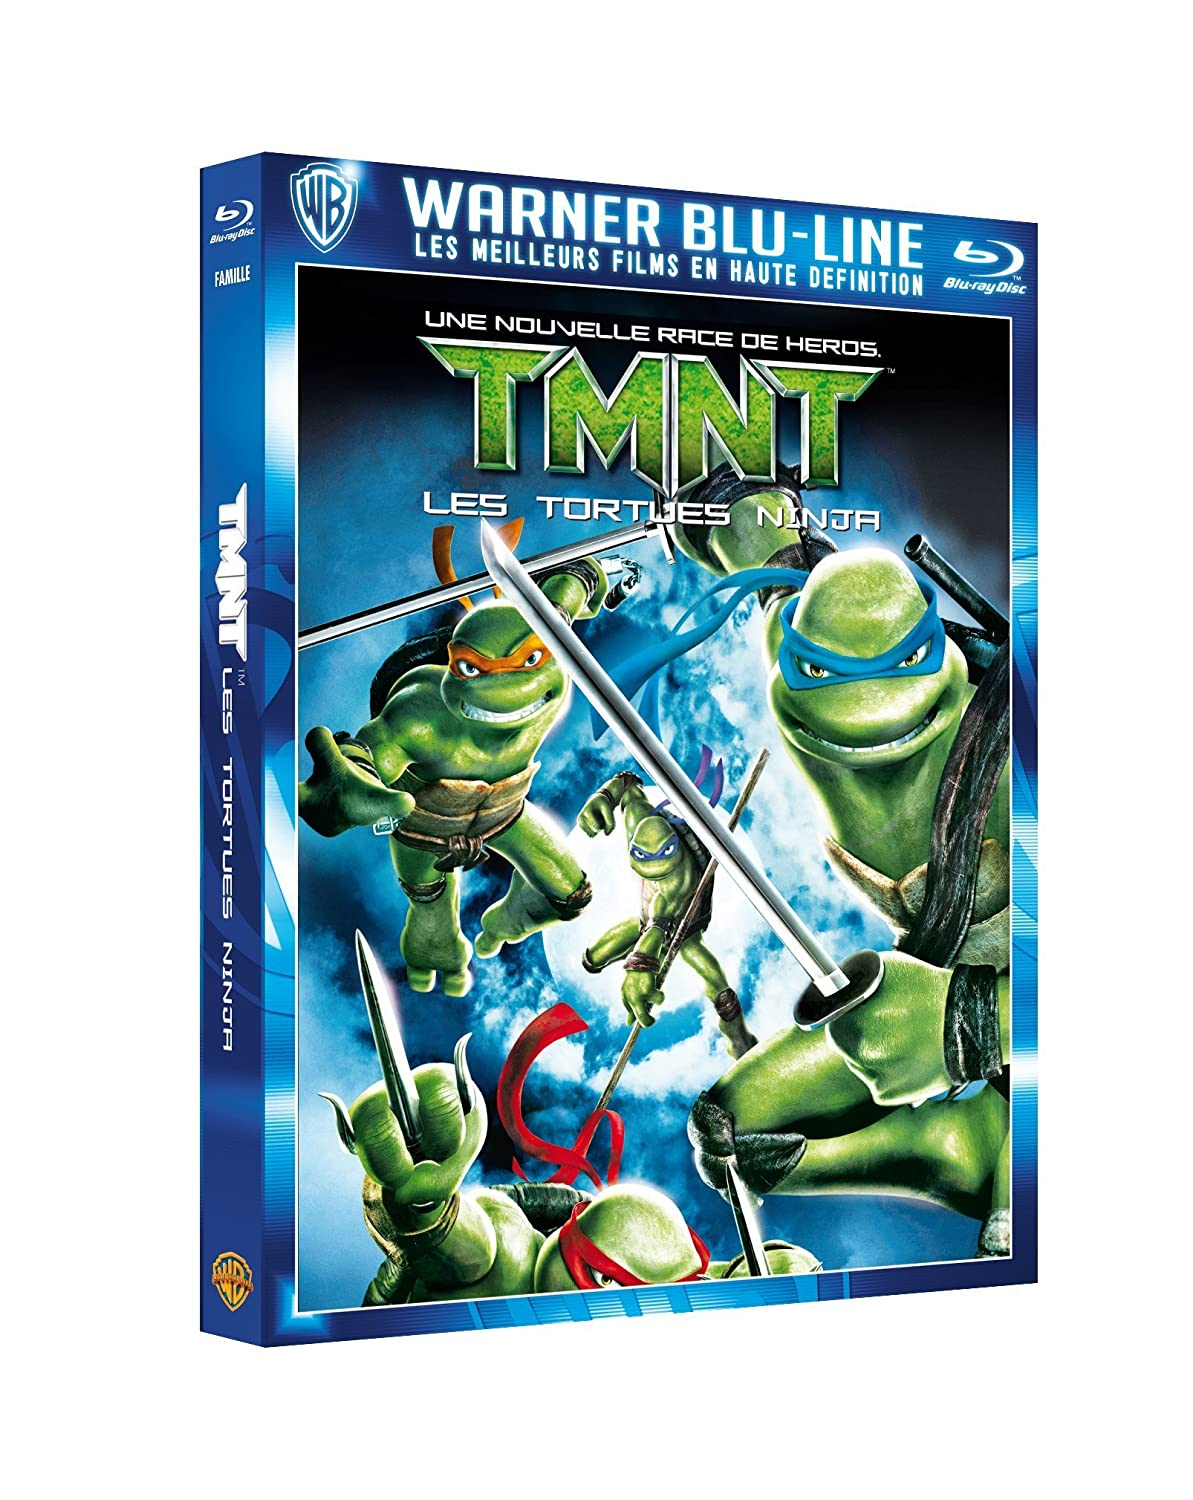 Amazon.com: Tmnt, les tortues ninja [Blu-ray]: Movies & TV